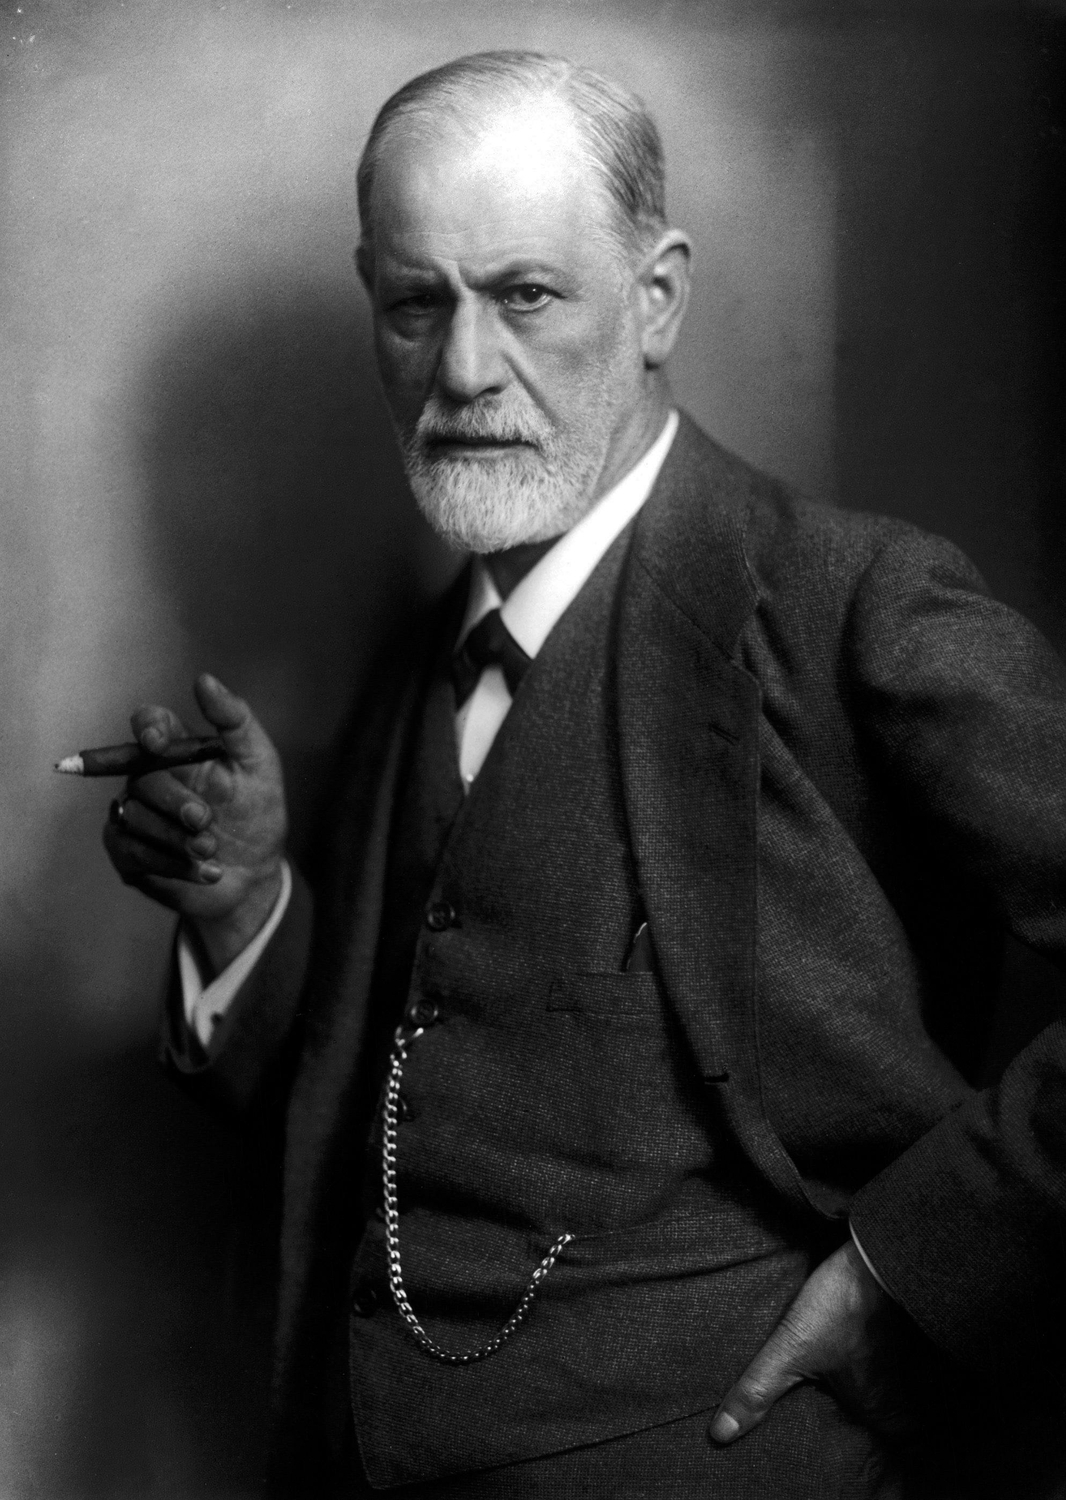 Dr. Freud says youre overanalyzing it